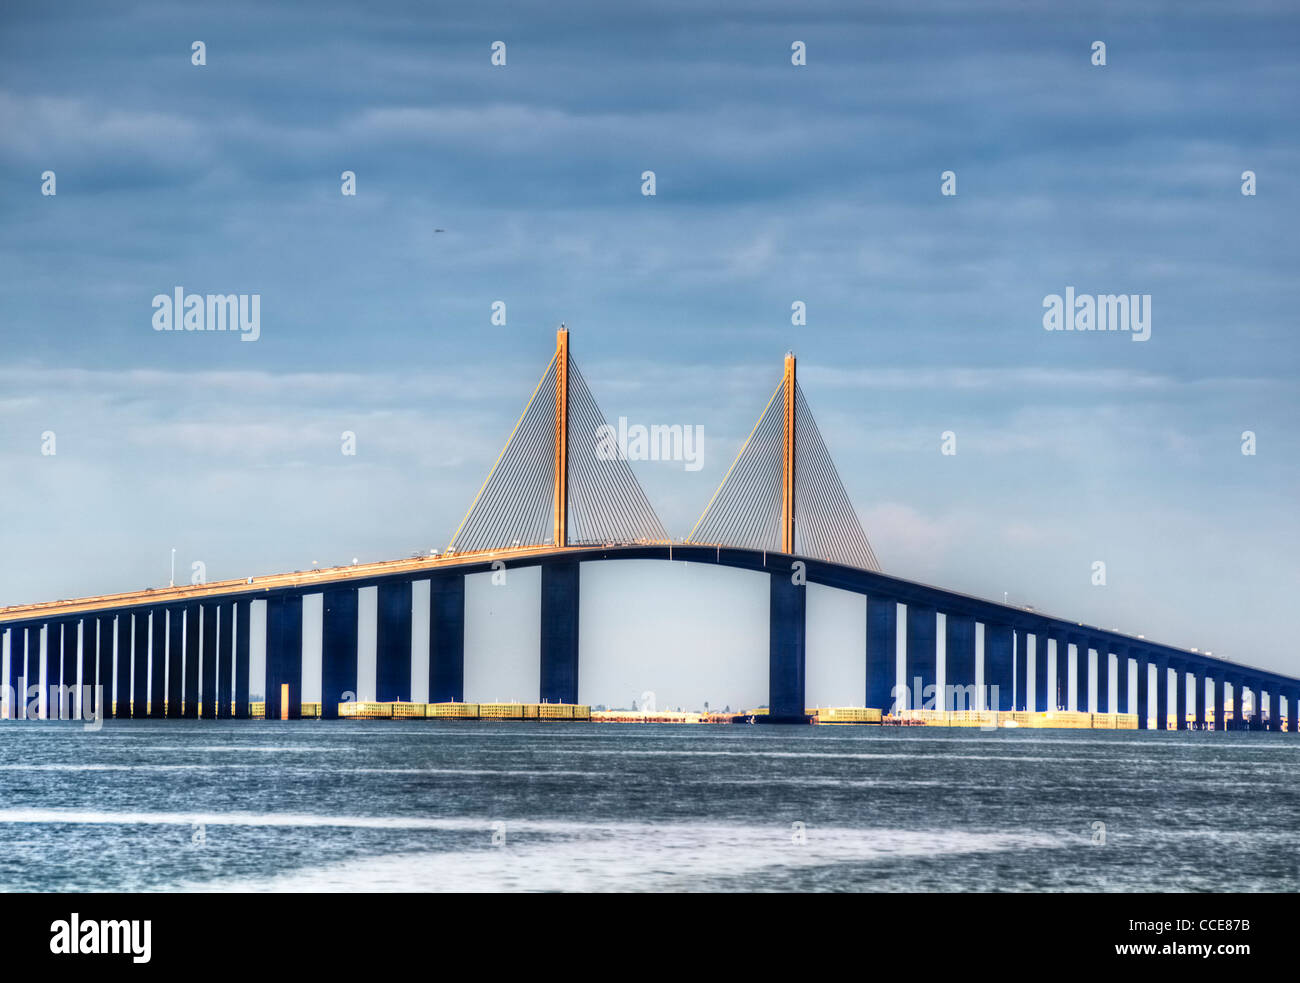 Sunshine Skyway in St. Petersburg, Florida - Stock Image